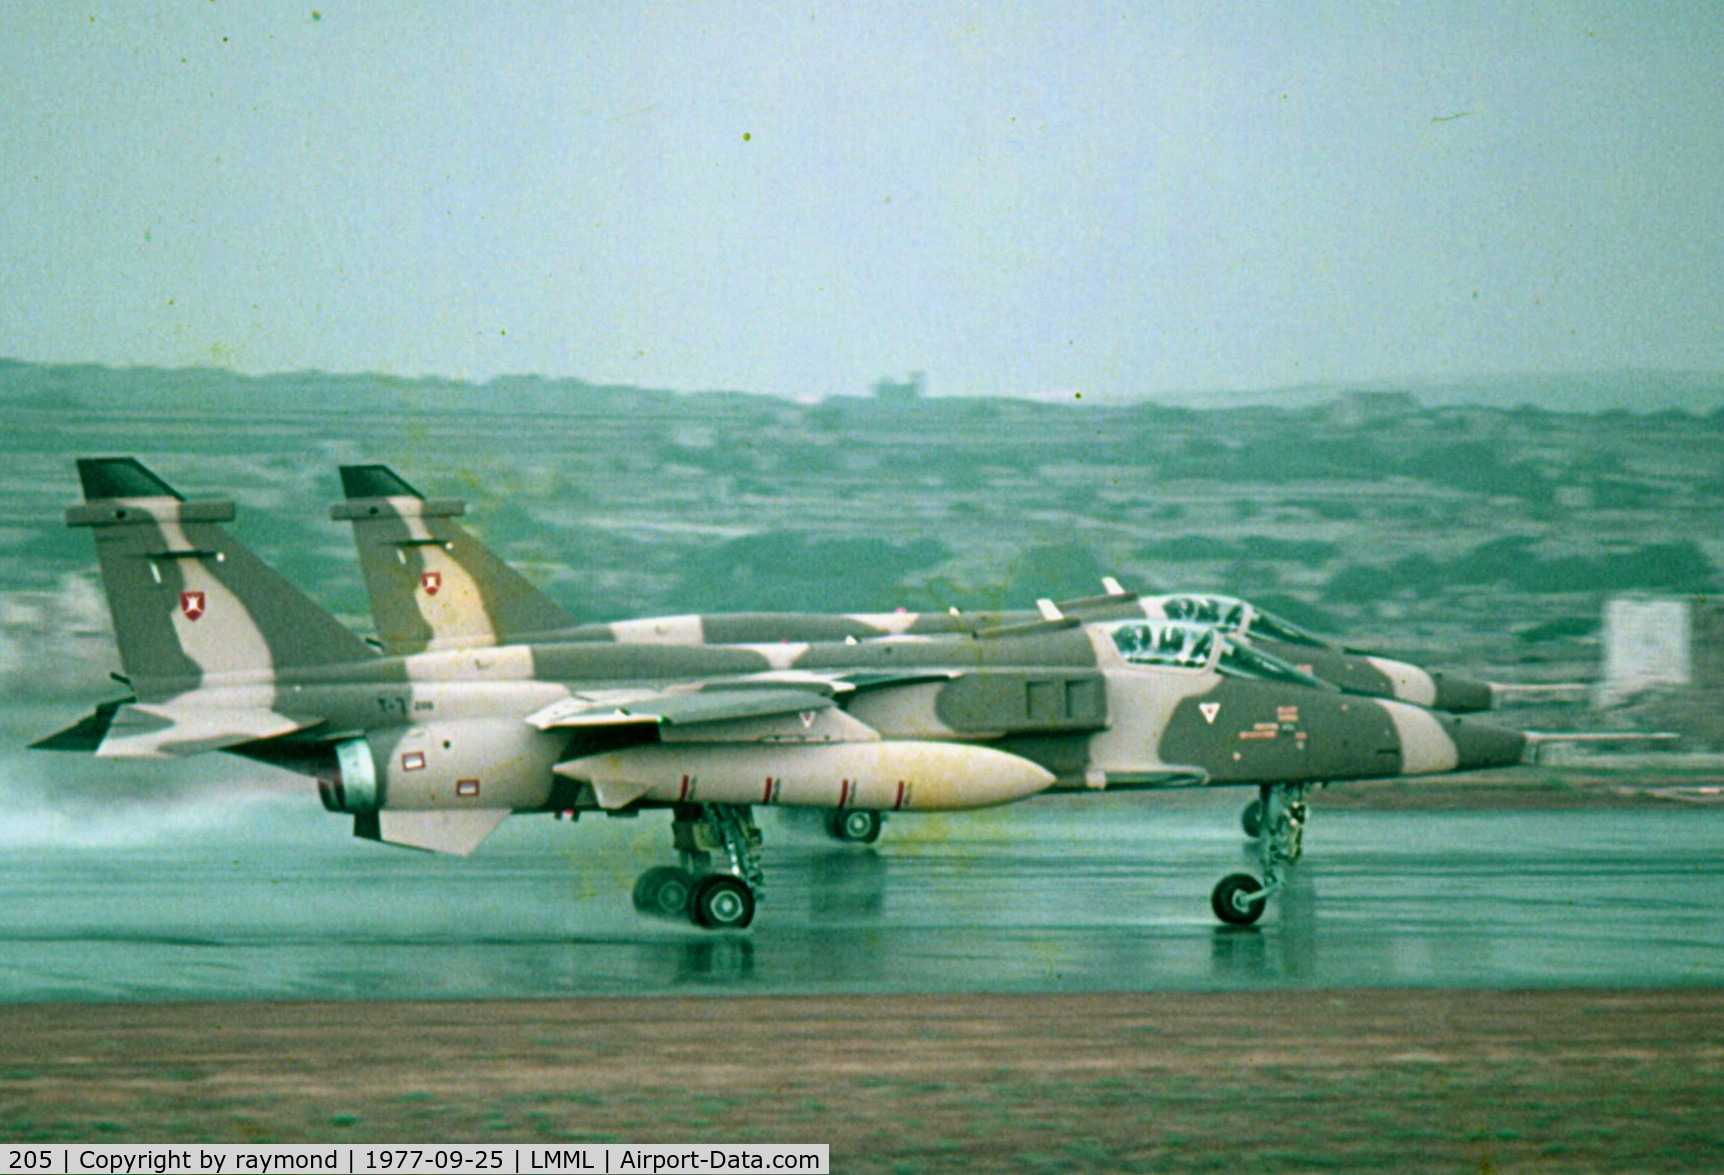 205, 1977 Sepecat Jaguar S C/N 210/S(O)3, Jaguars 205 and 206 of Oman Air Force being delivered through Malta in September 1977. Seen here on departure double take-off.